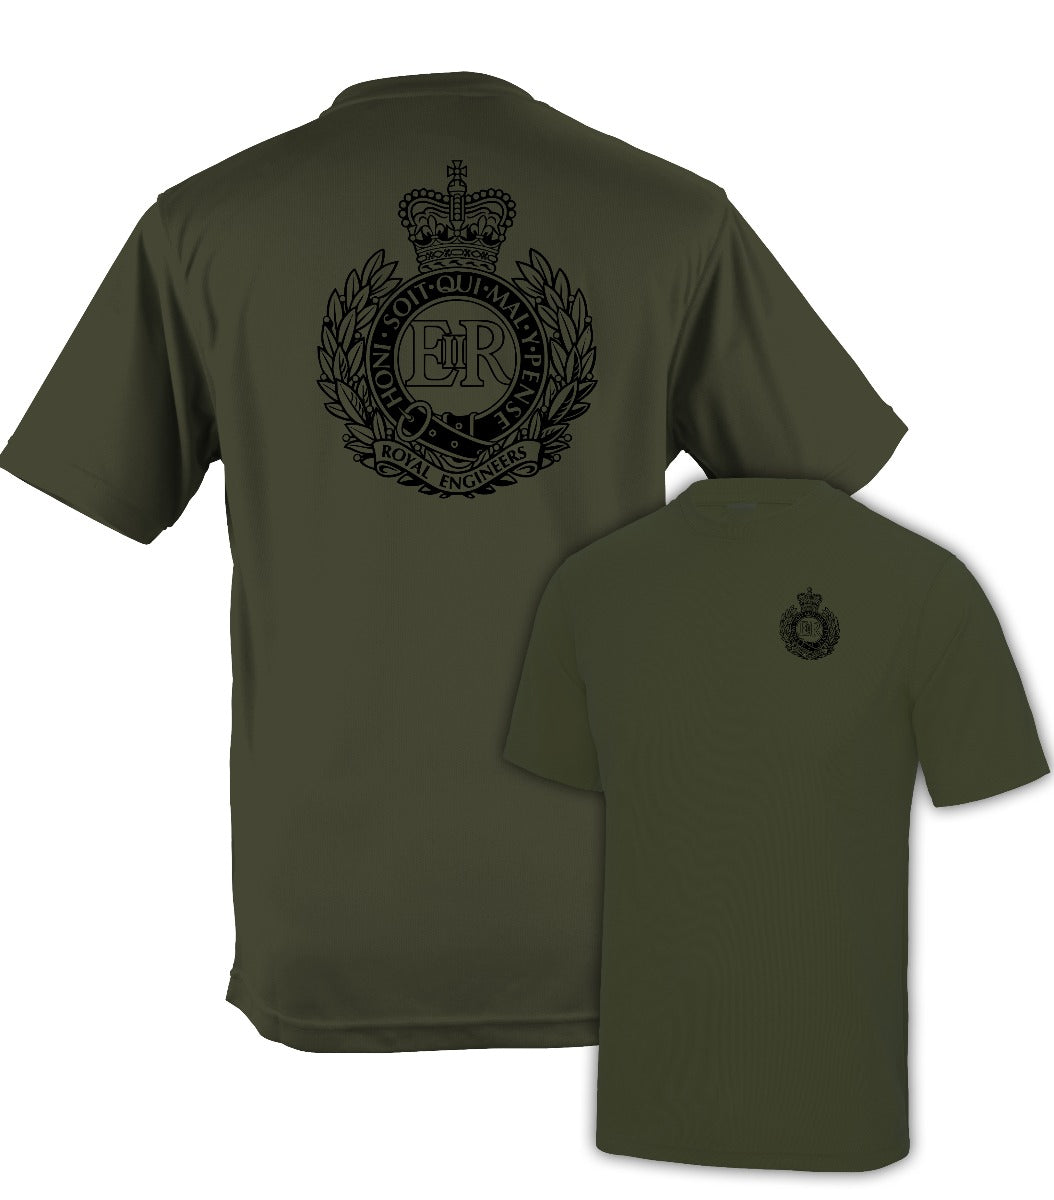 Fully Printed Royal Engineers (RE) Wicking Fabric T-shirt